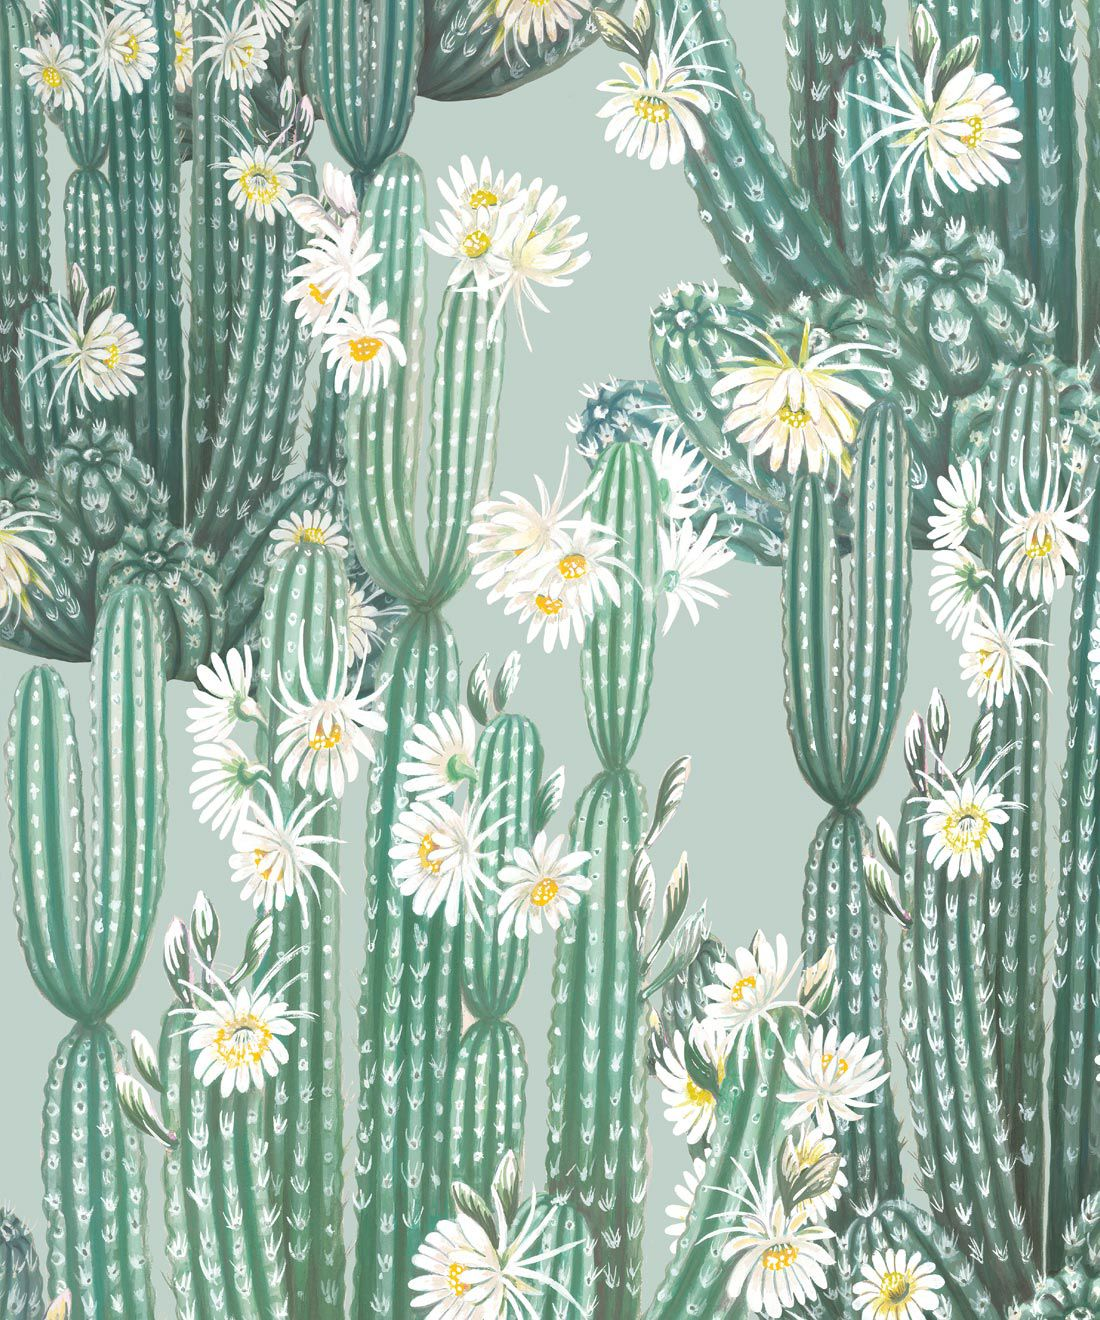 San Pedro Wallpaper Aqua • Cactus Wallpaper • Succulents Wallpaper • Desert Wallpaper Swatch